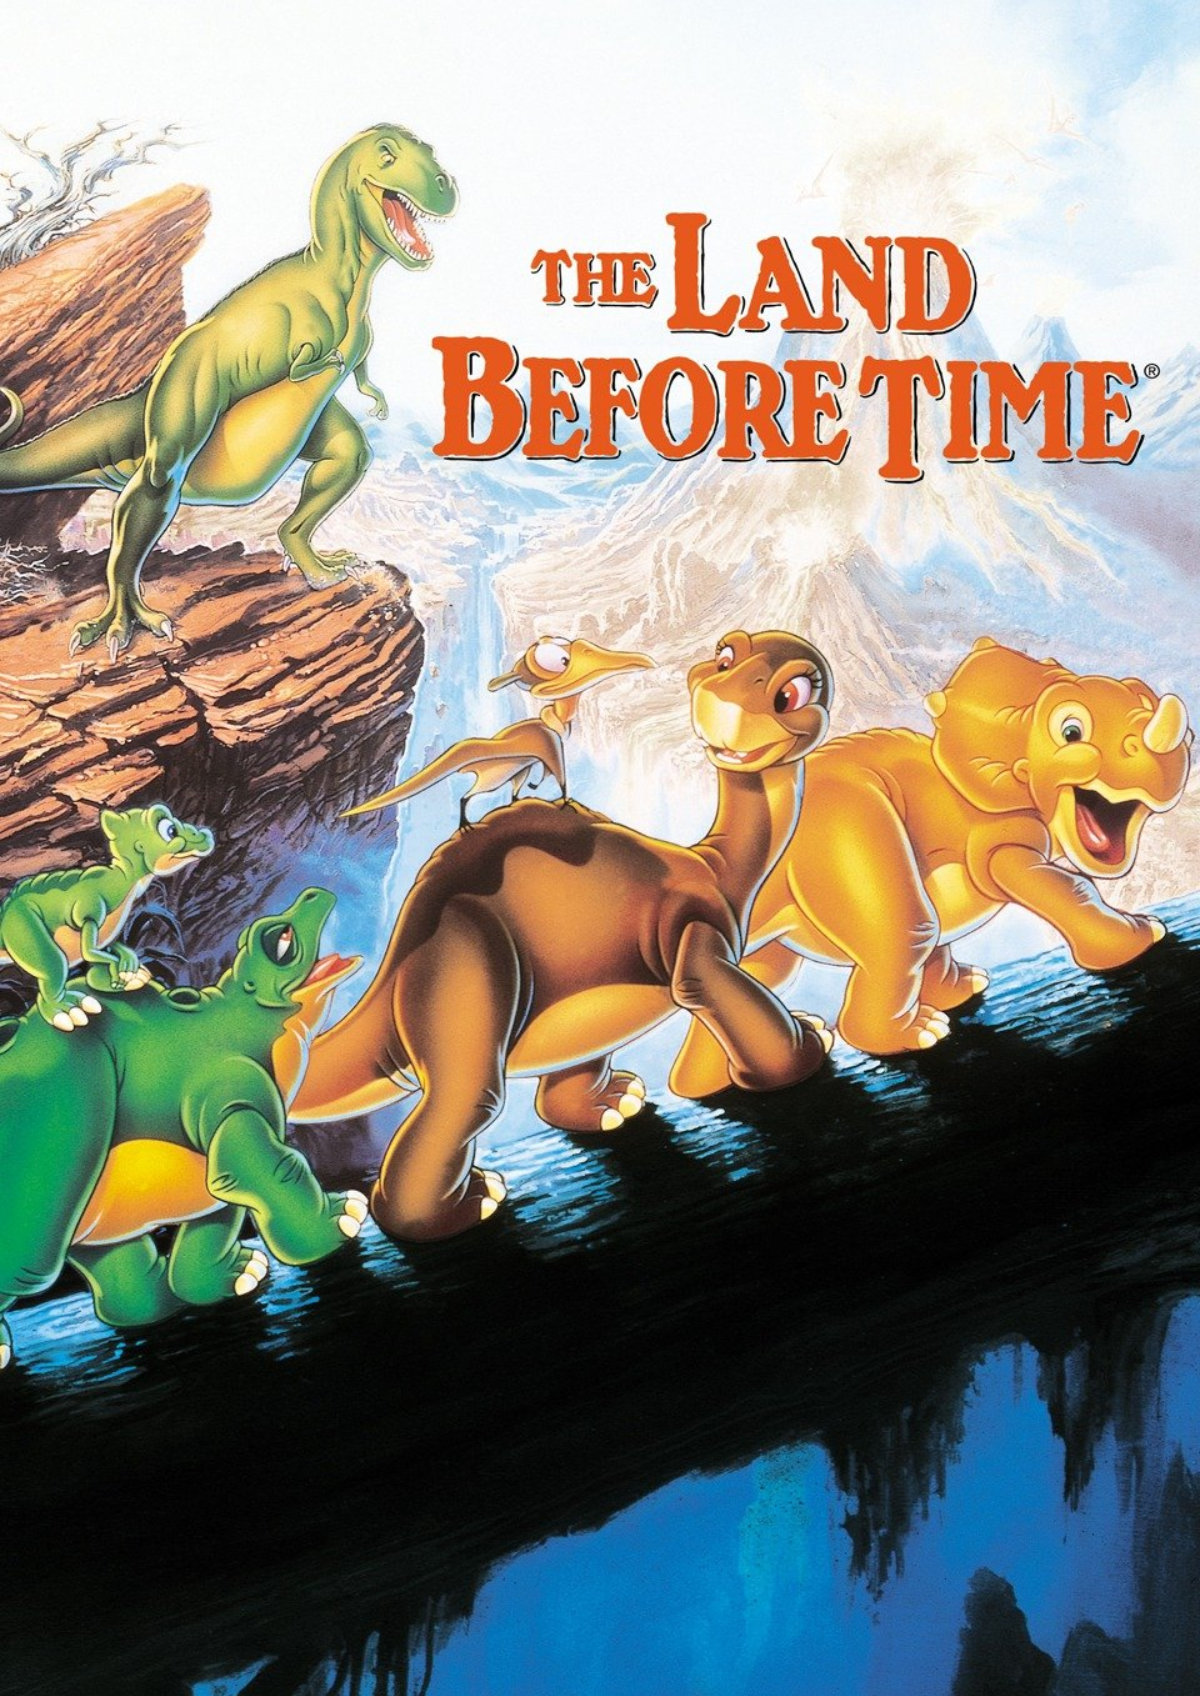 'The Land Before Time' movie poster